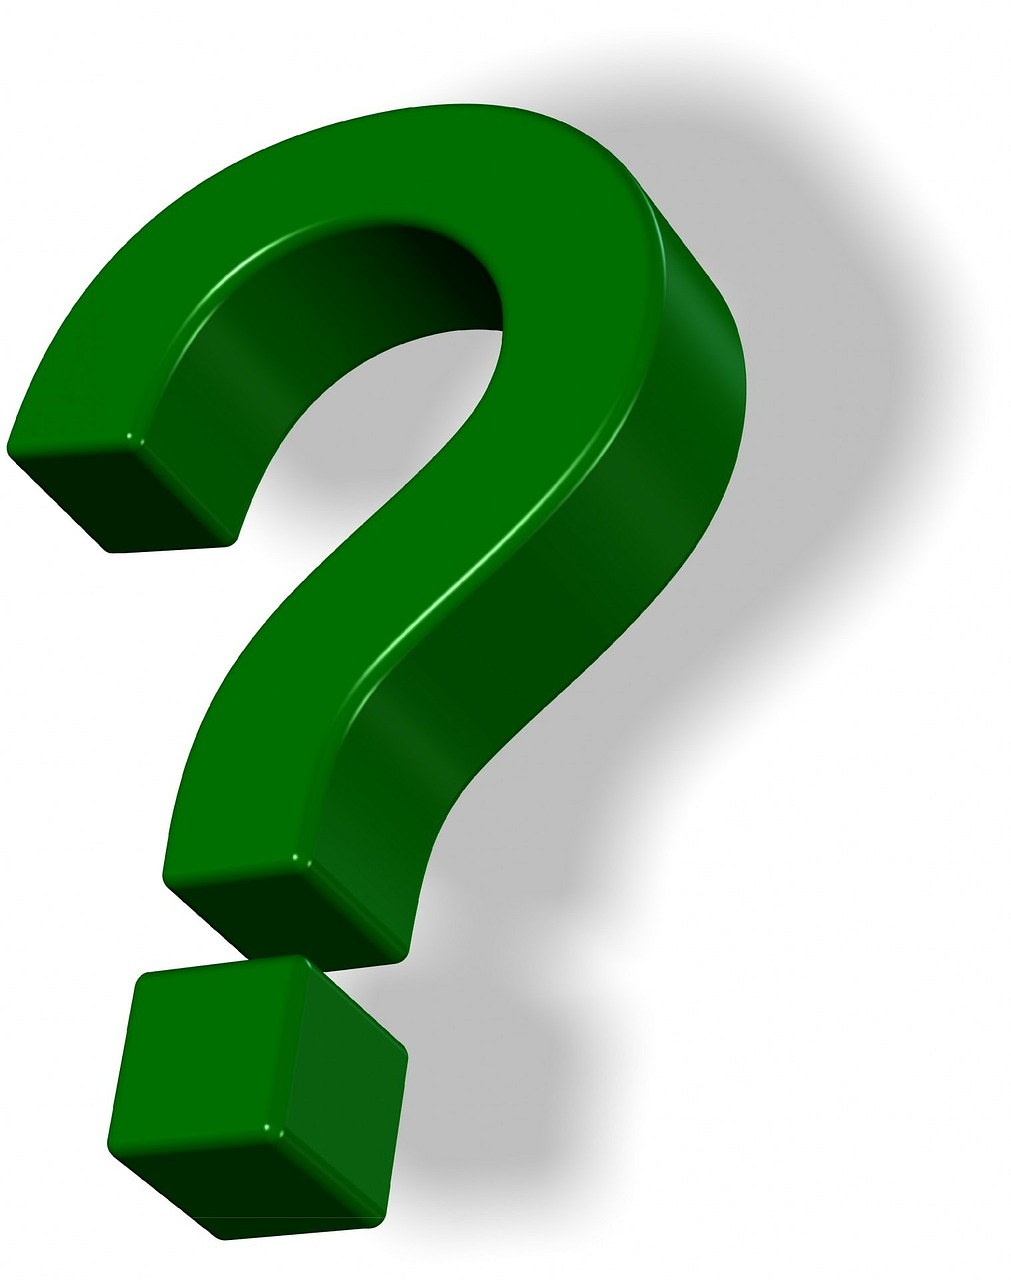 What are your own personal questions? Ask them now for Psychic Instant readings